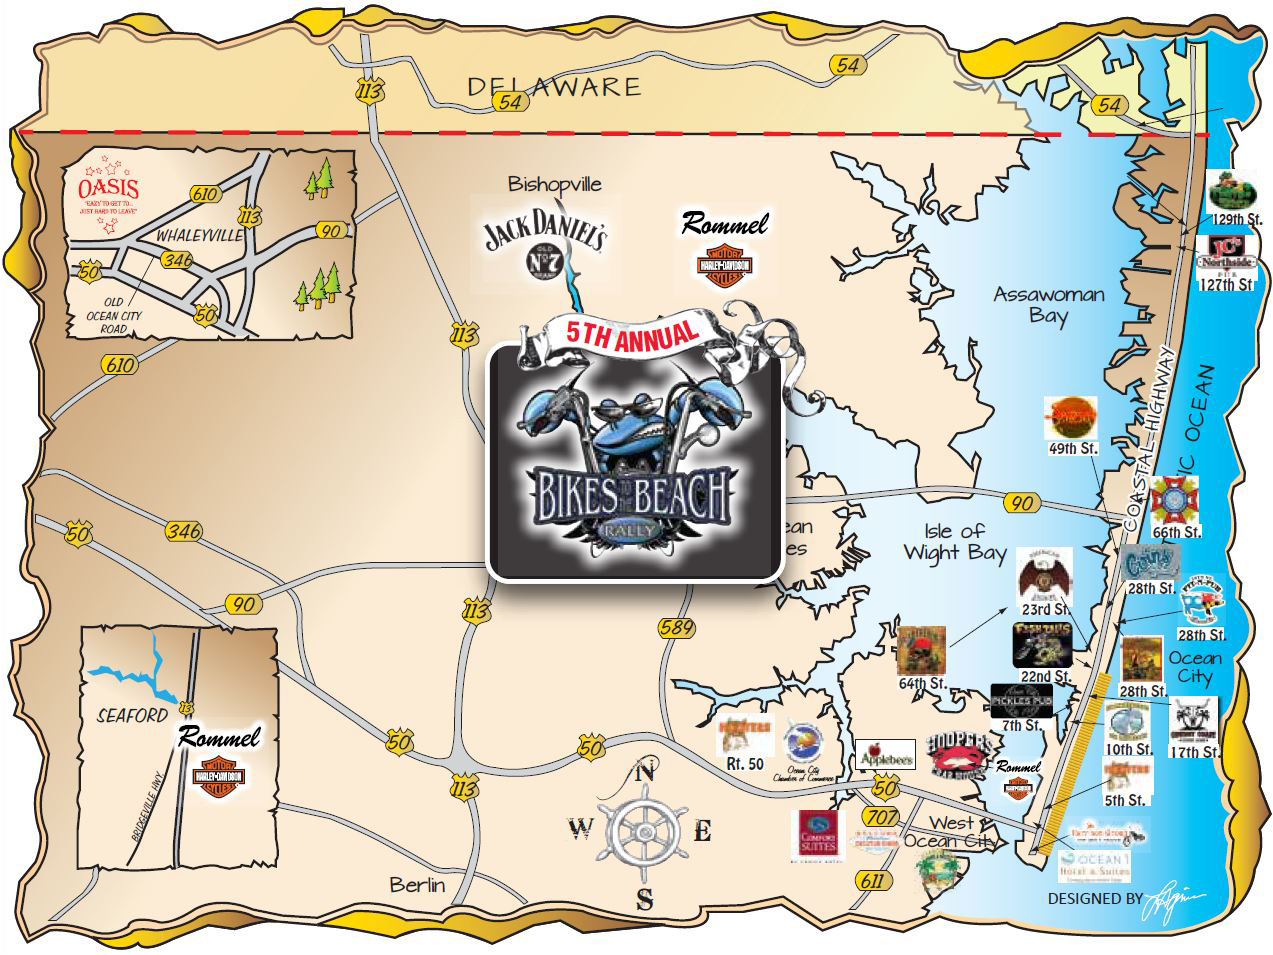 Bikes To The Beach Ocean City 2015 Locations